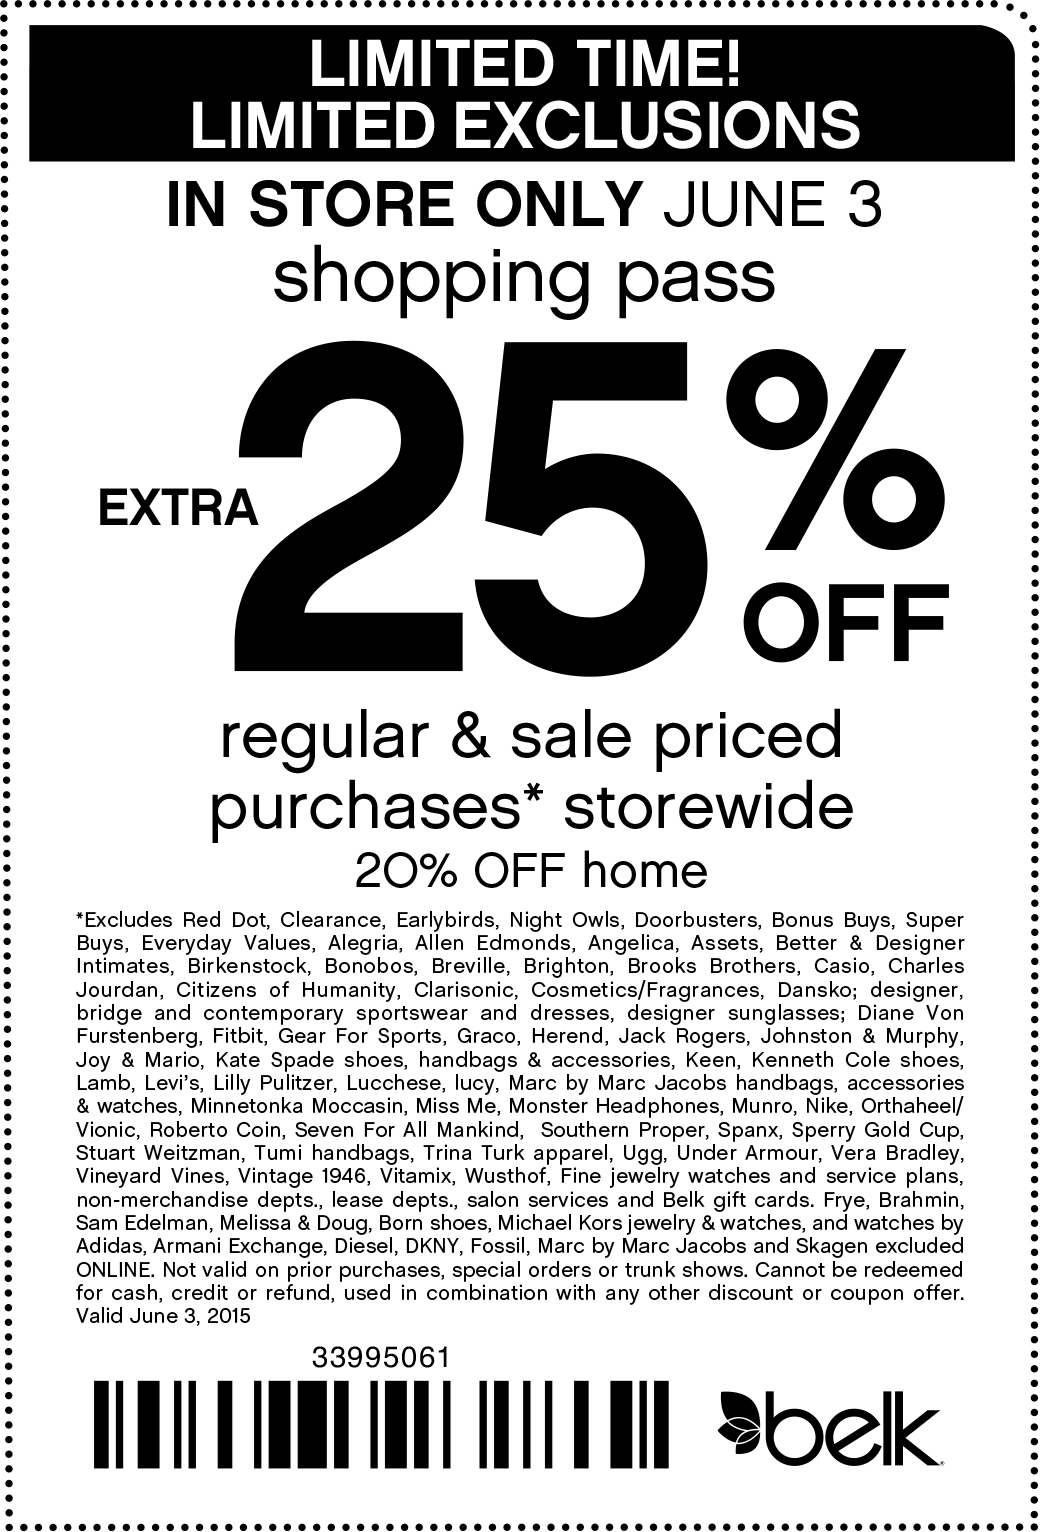 Belk Coupon March 2017 Extra 25% off today at Belk